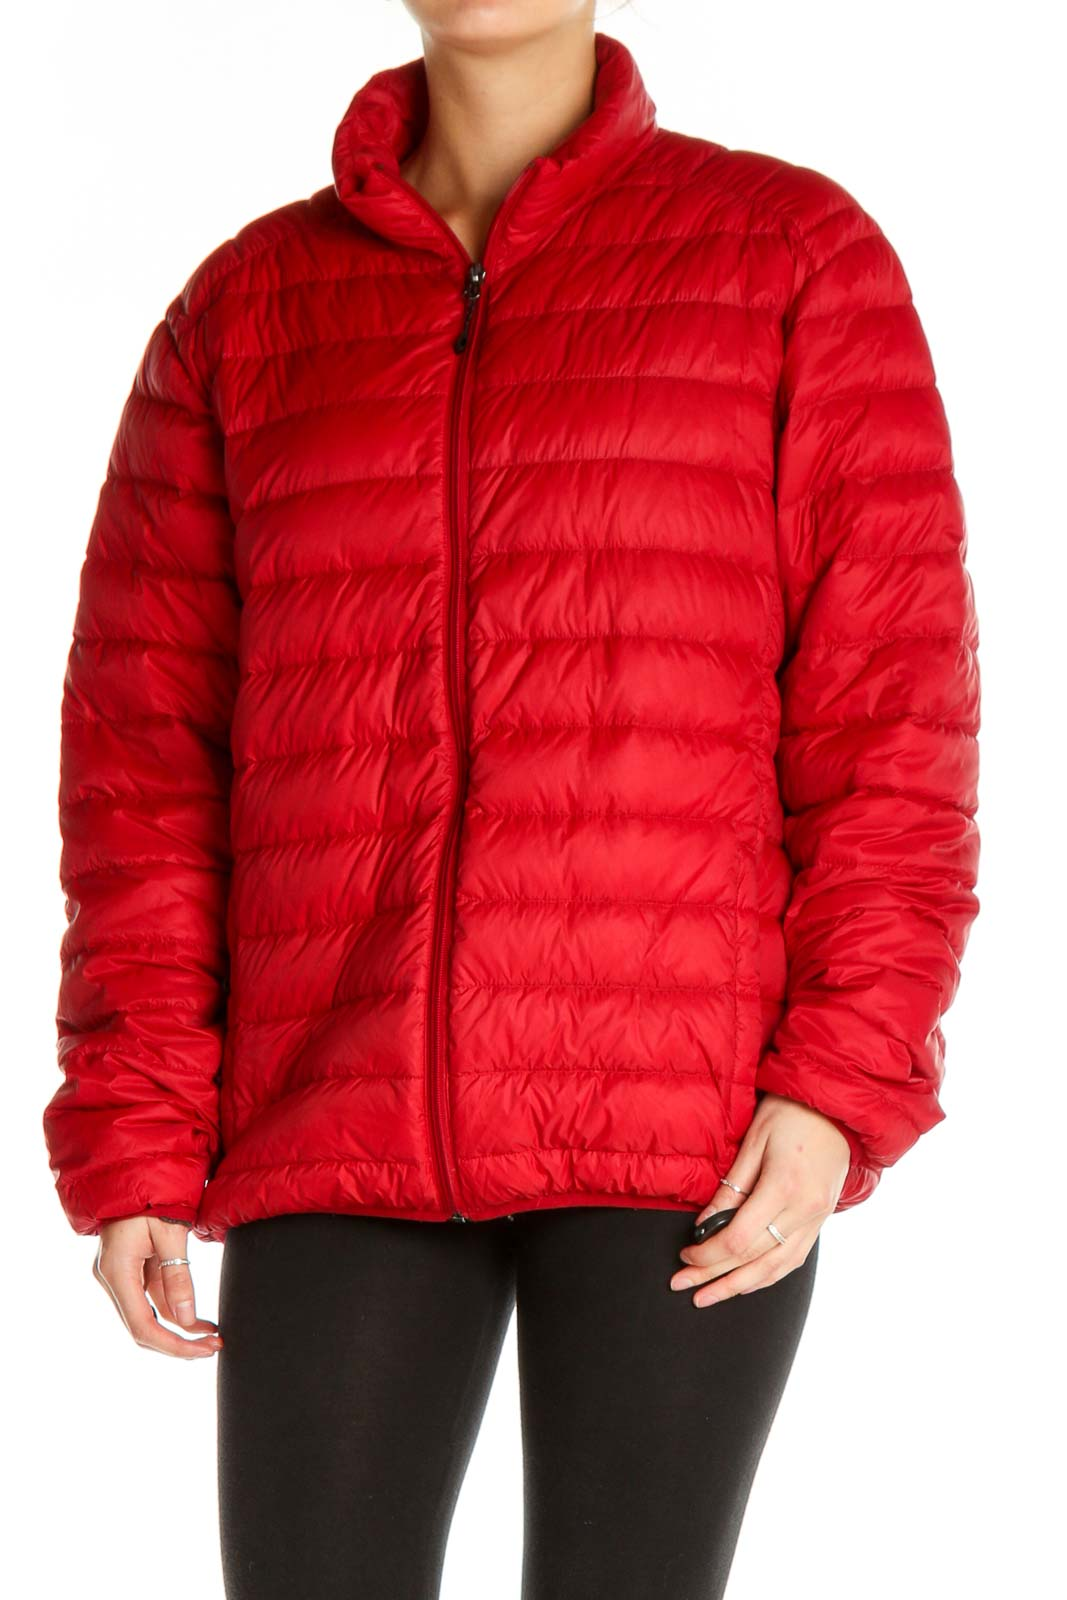 Red Puffer Jacket Front